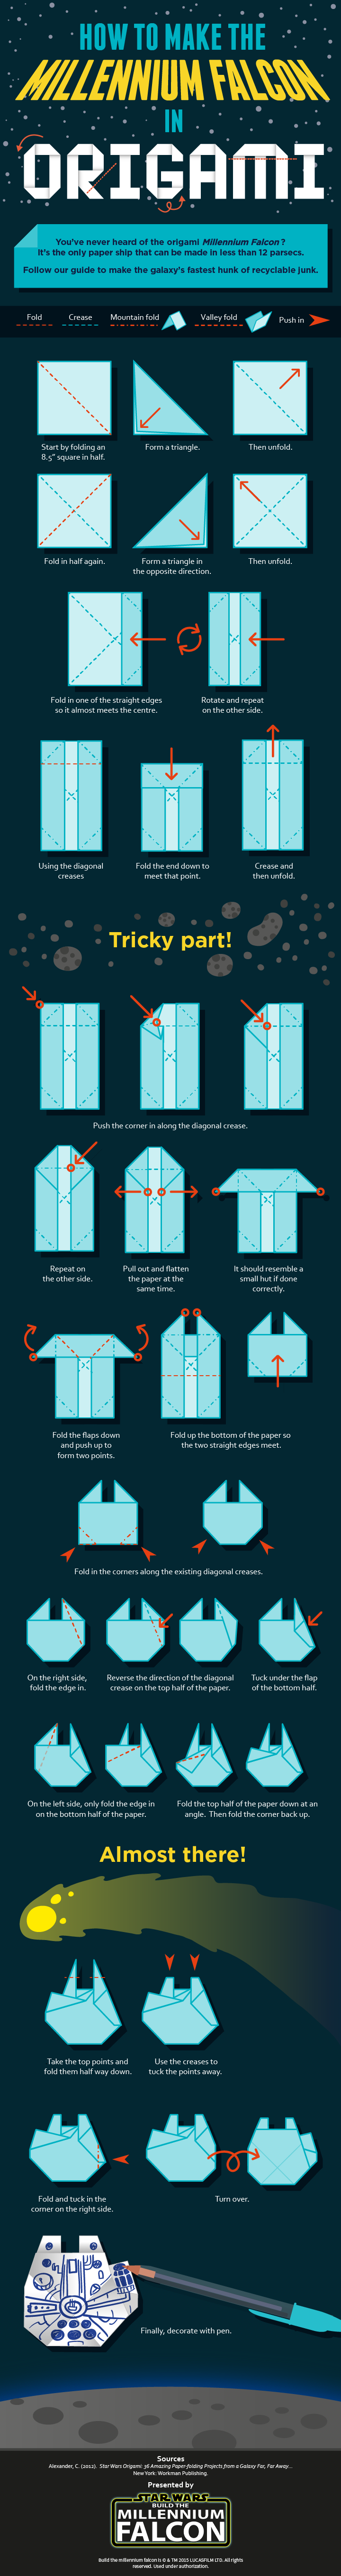 How to Make the Millennium Falcon in Origami #infographic